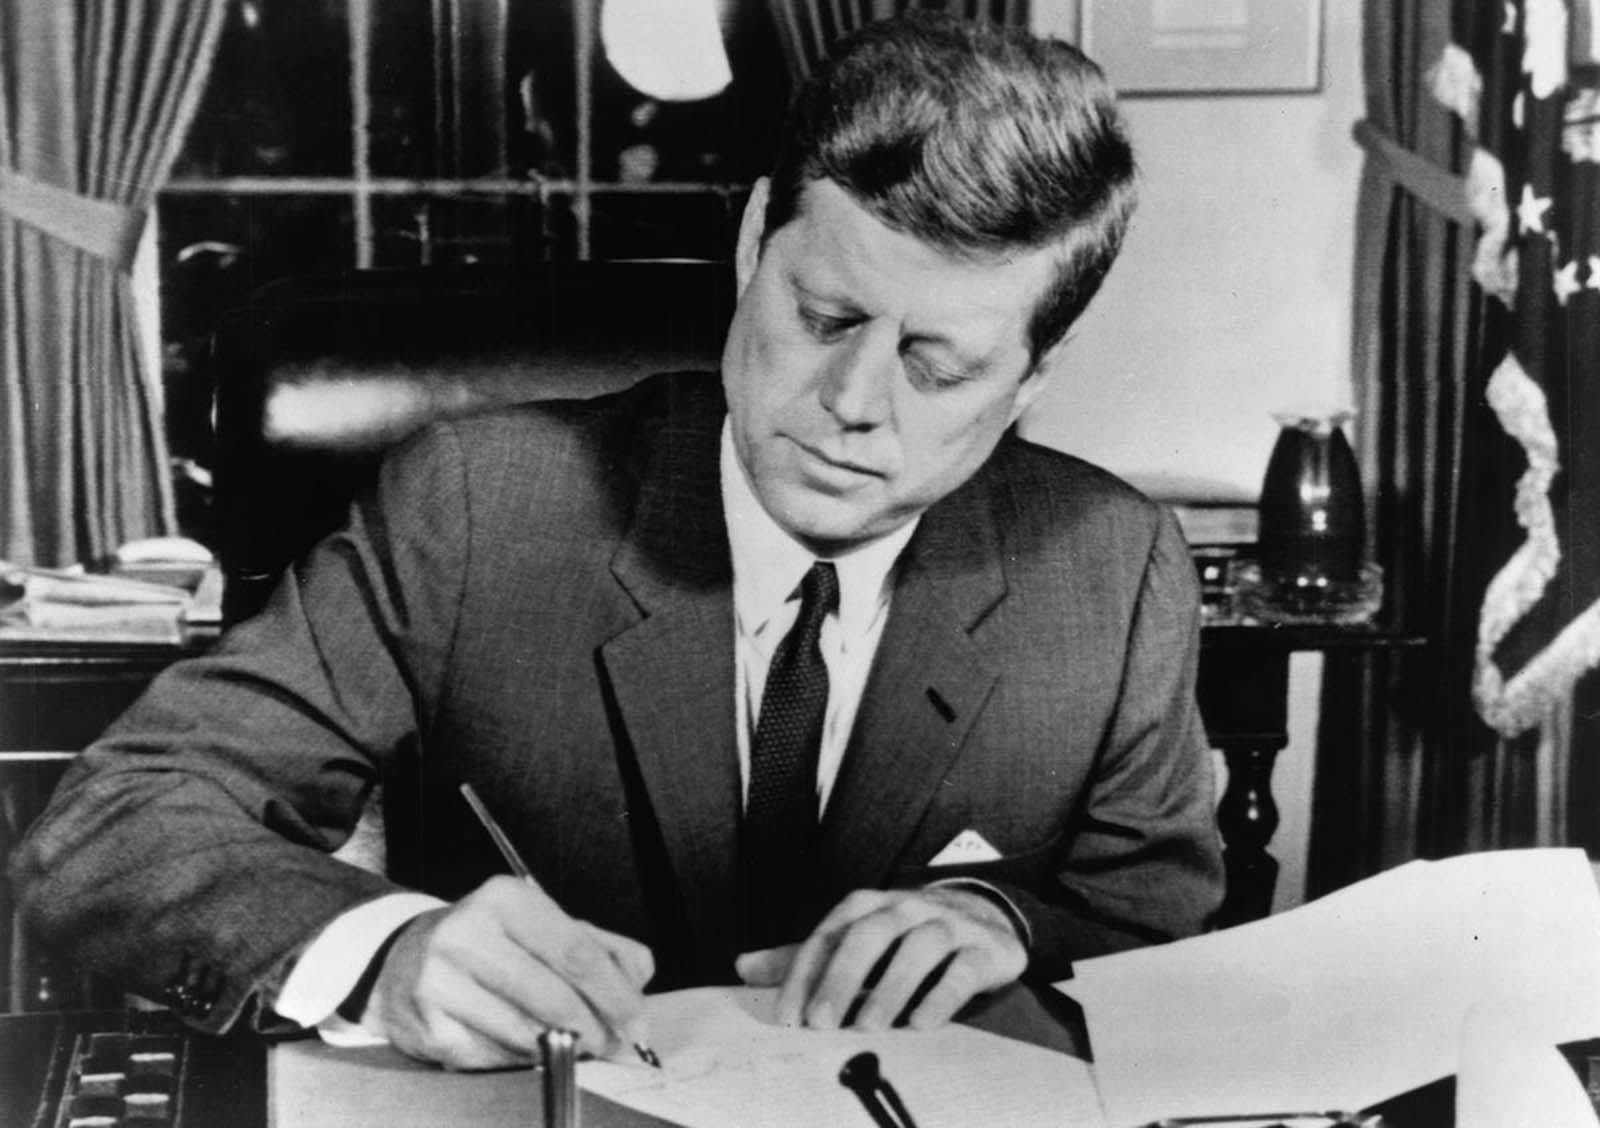 President John F. Kennedy signs a proclamation enacting the U.S. arms quarantine against Cuba, on October 23, 1962.